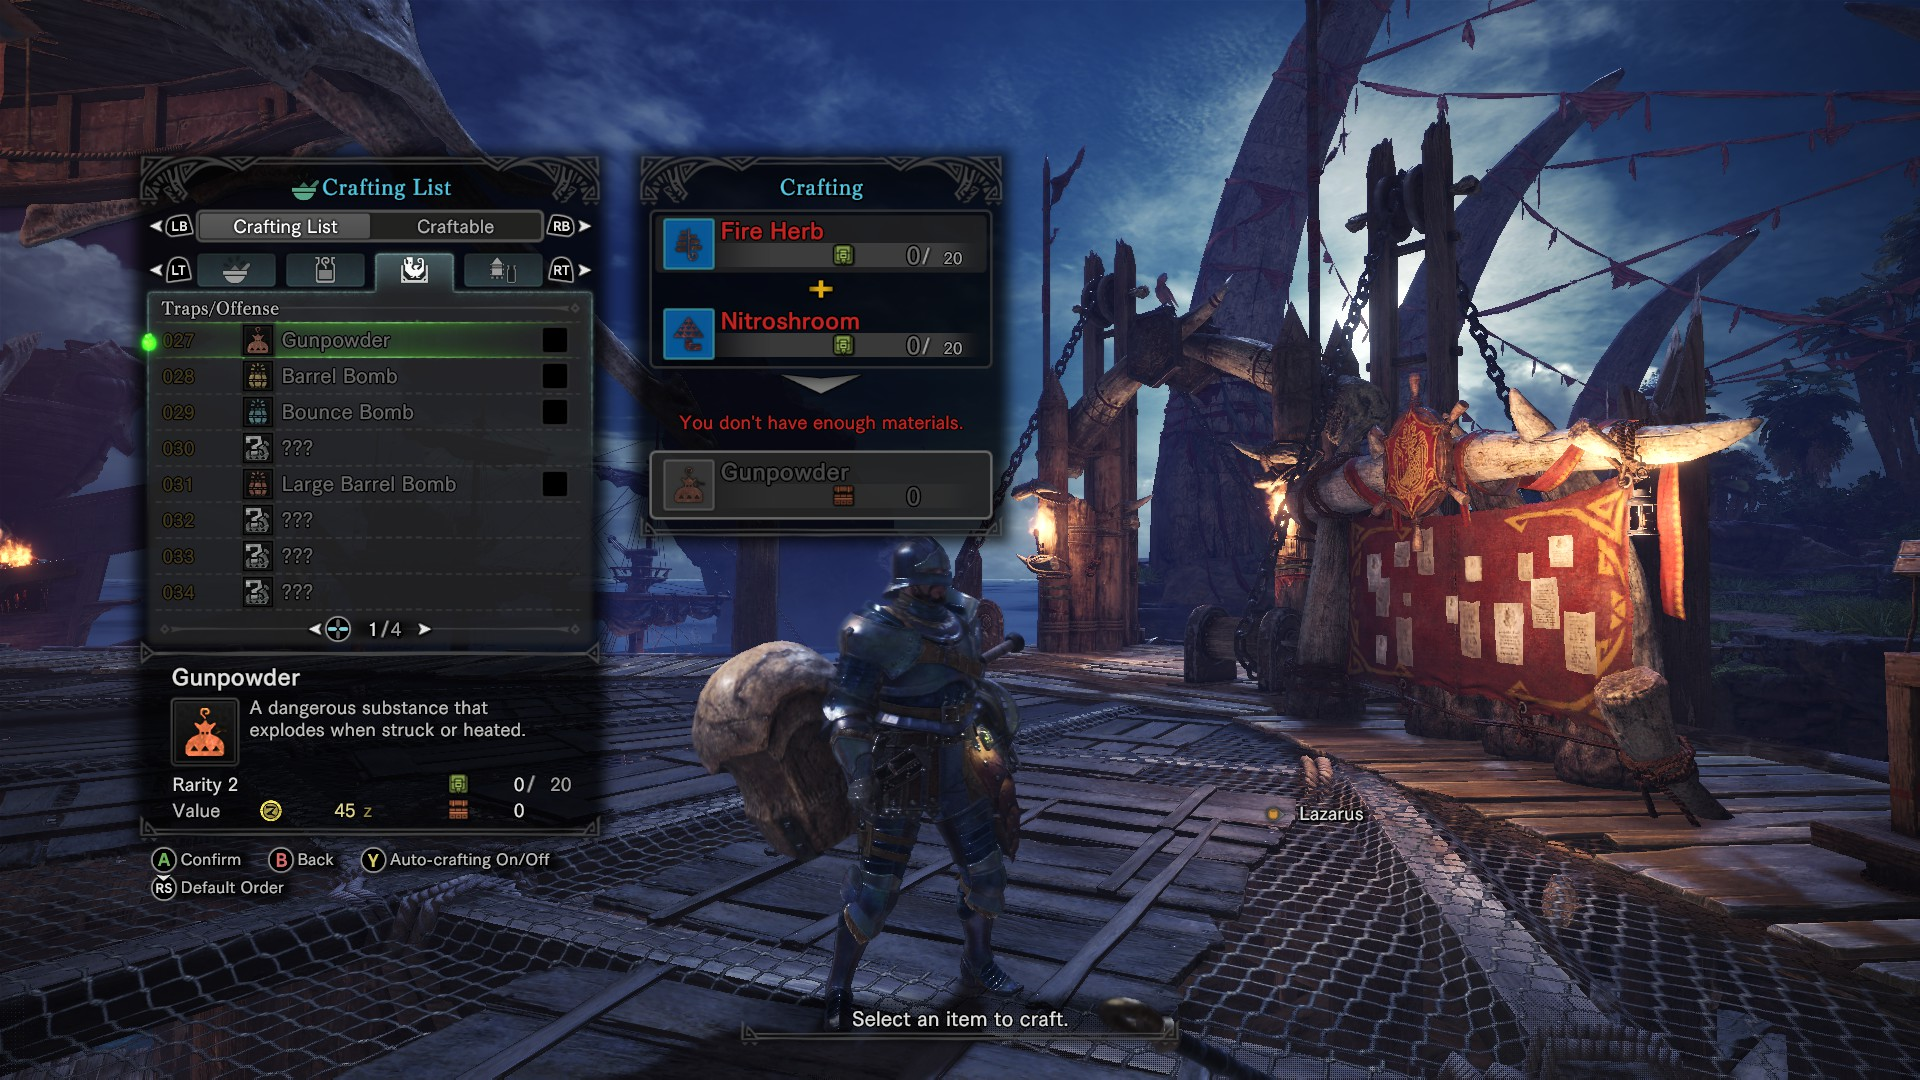 Traps and offensive item crafting menu